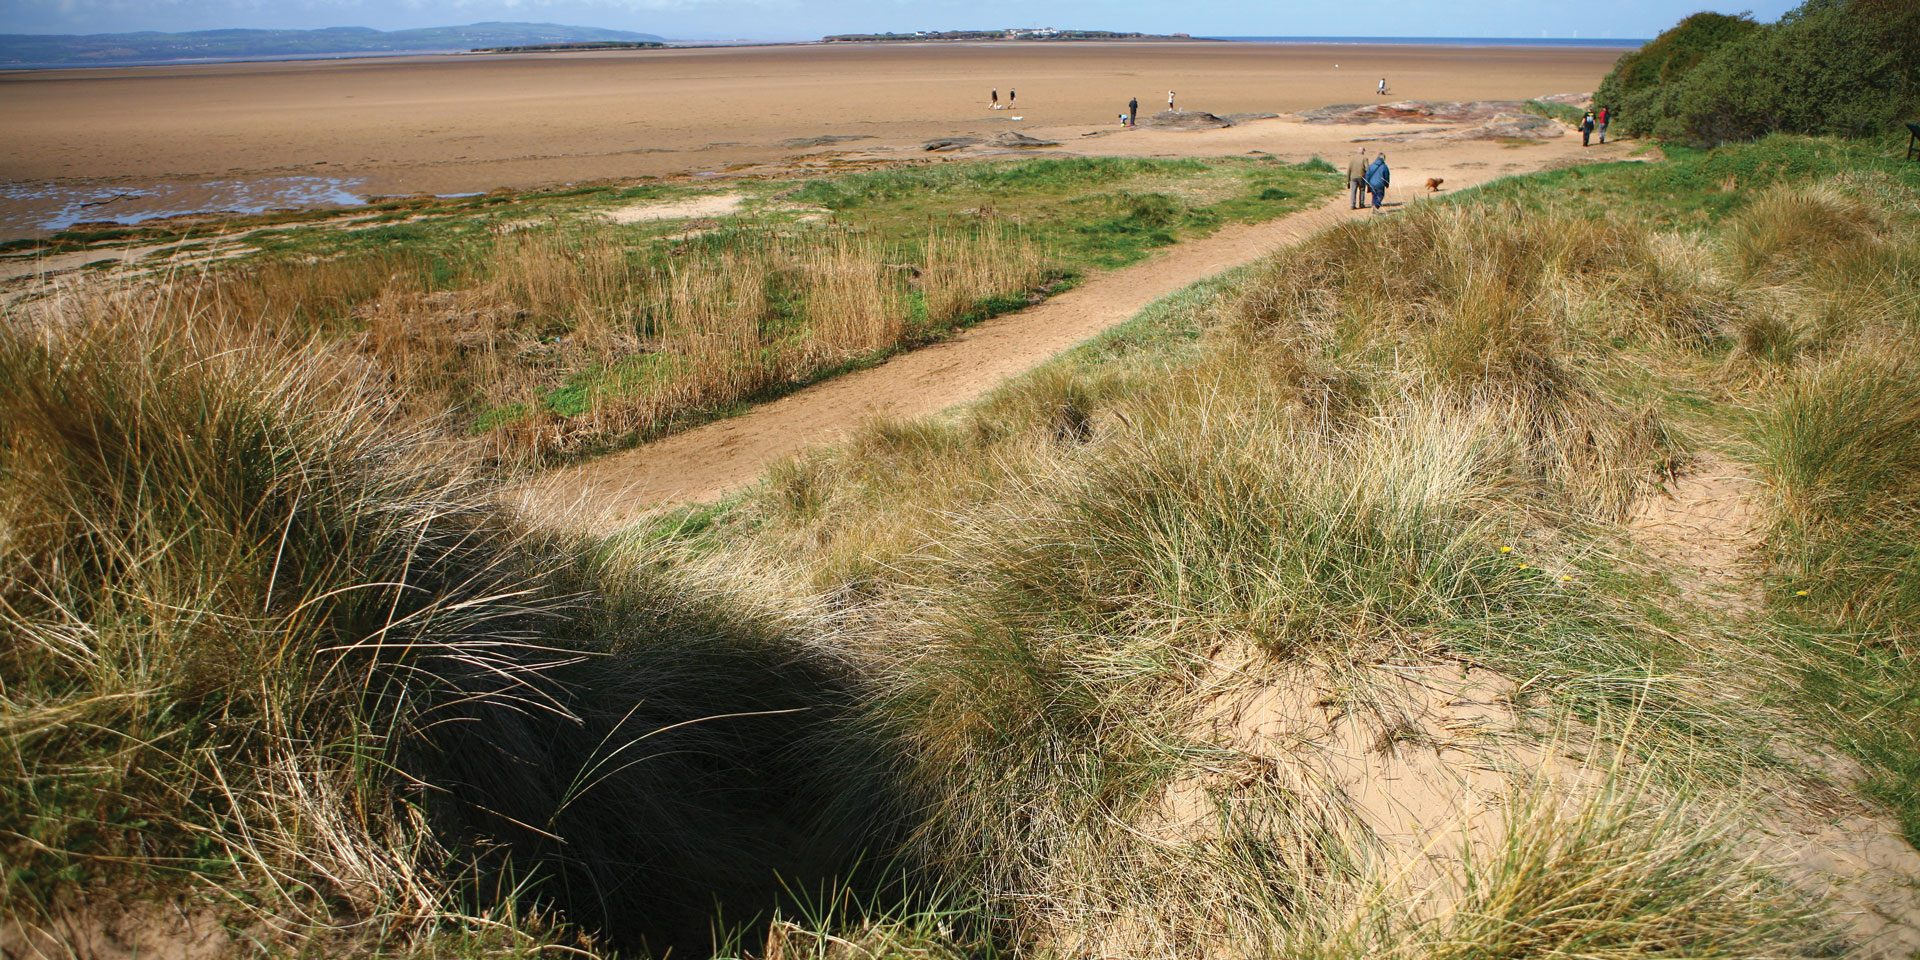 The dune system at Red Rocks looking out to Hilbre; a haven for willdlife and a draw for visitors © HVL